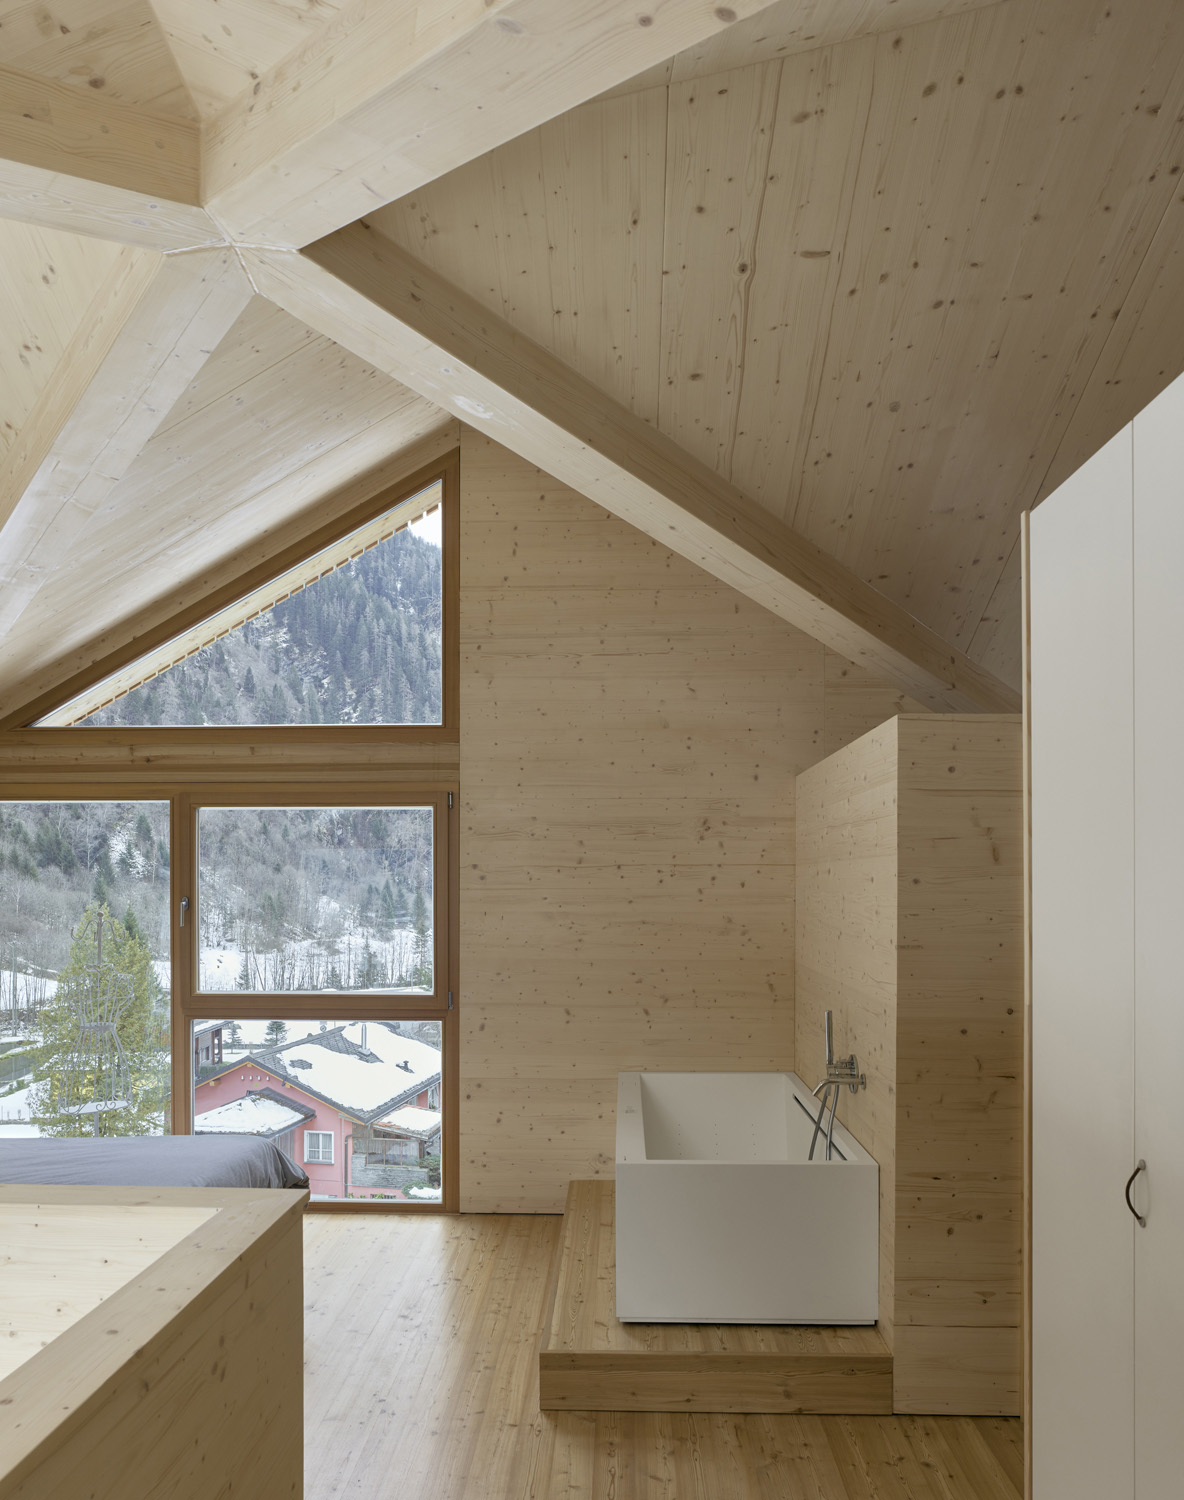 Swisshouse XXXV_natural lighting from outside Fabrice Fouillet